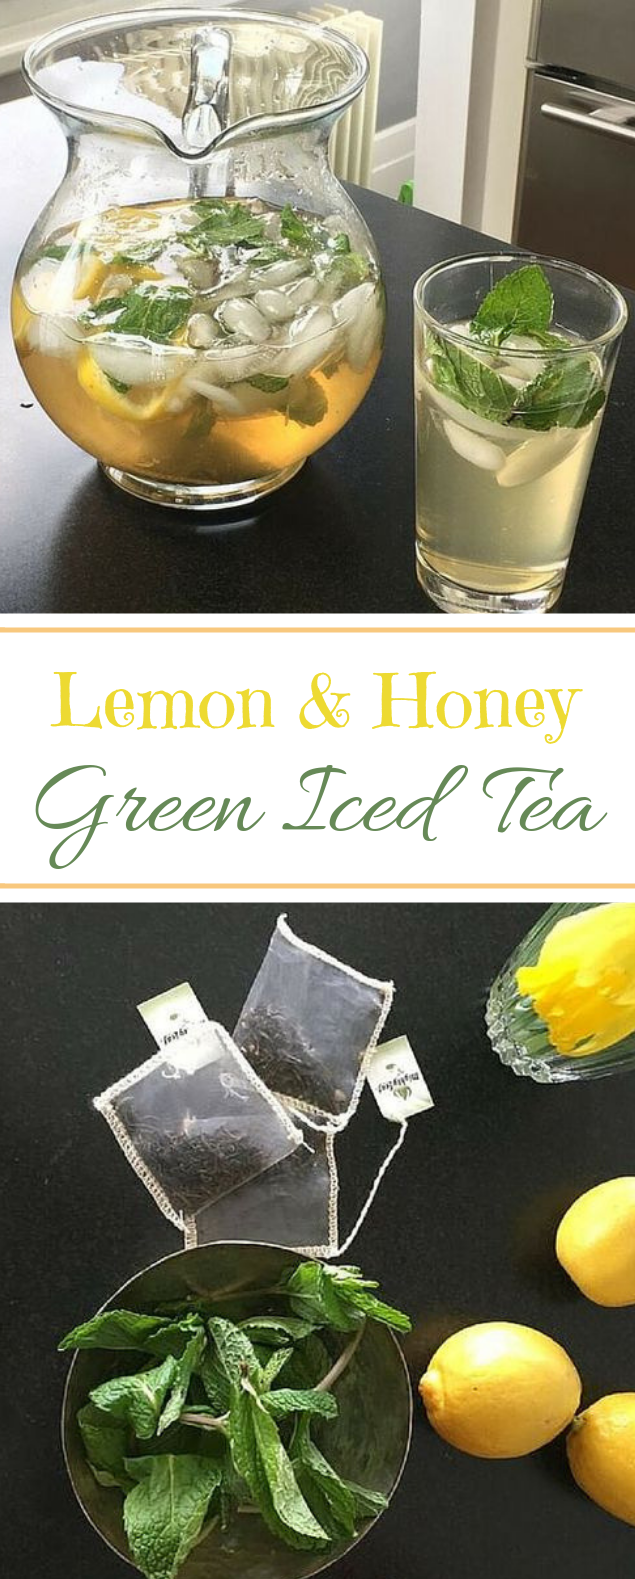 Lemon & Honey Green Iced Tea #drinks #icedtea